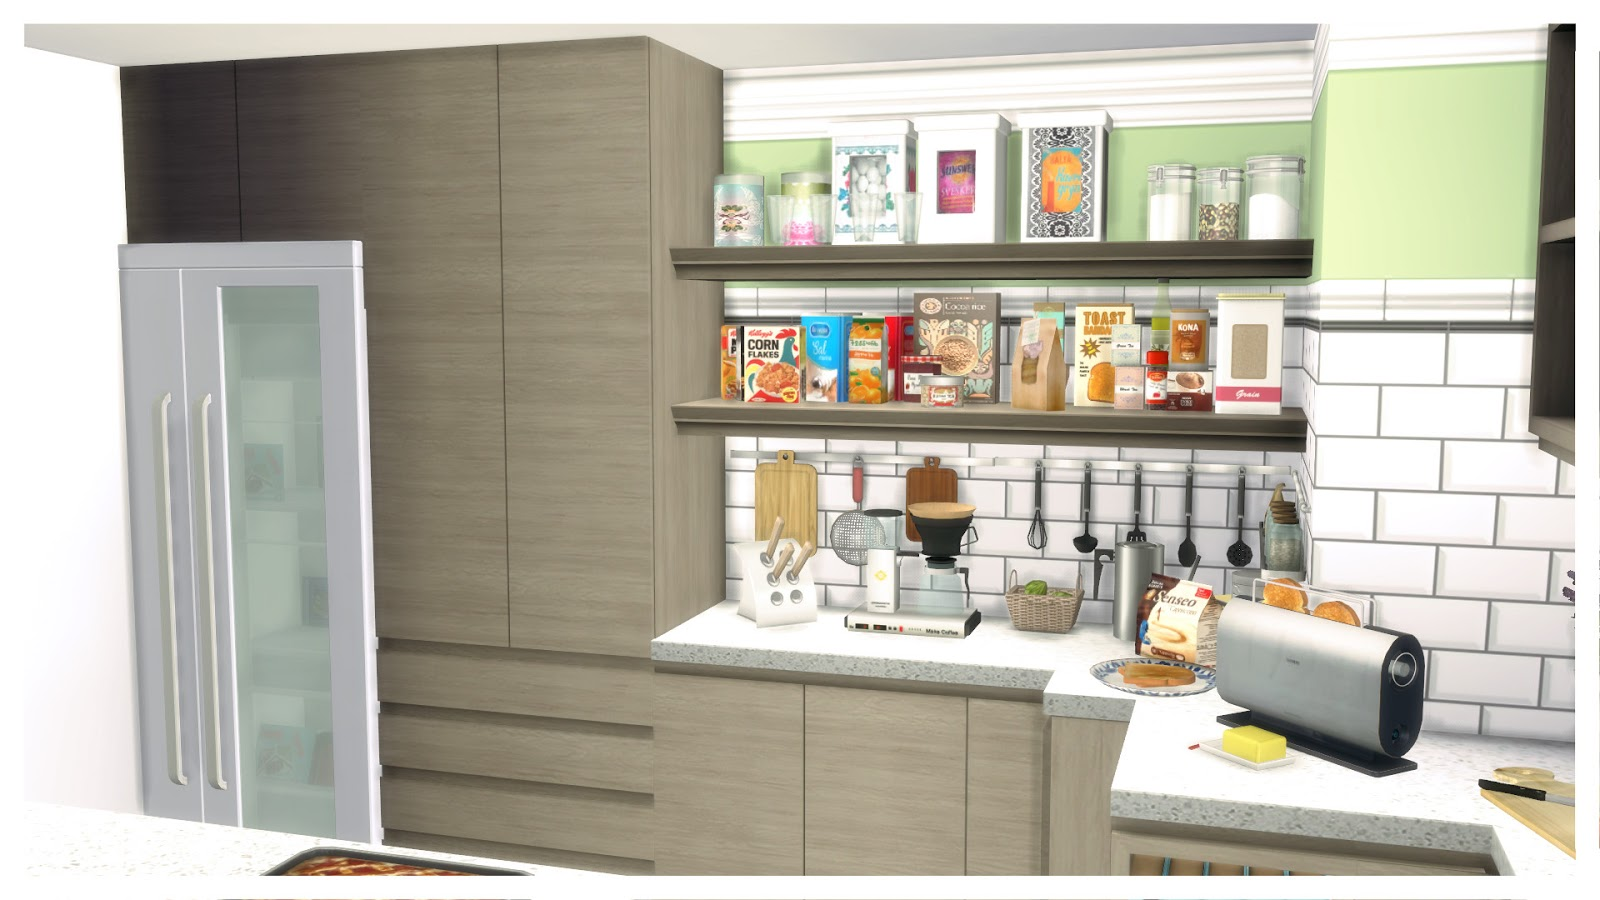 Sims 4 big family kitchen ii dinha for Large family kitchen